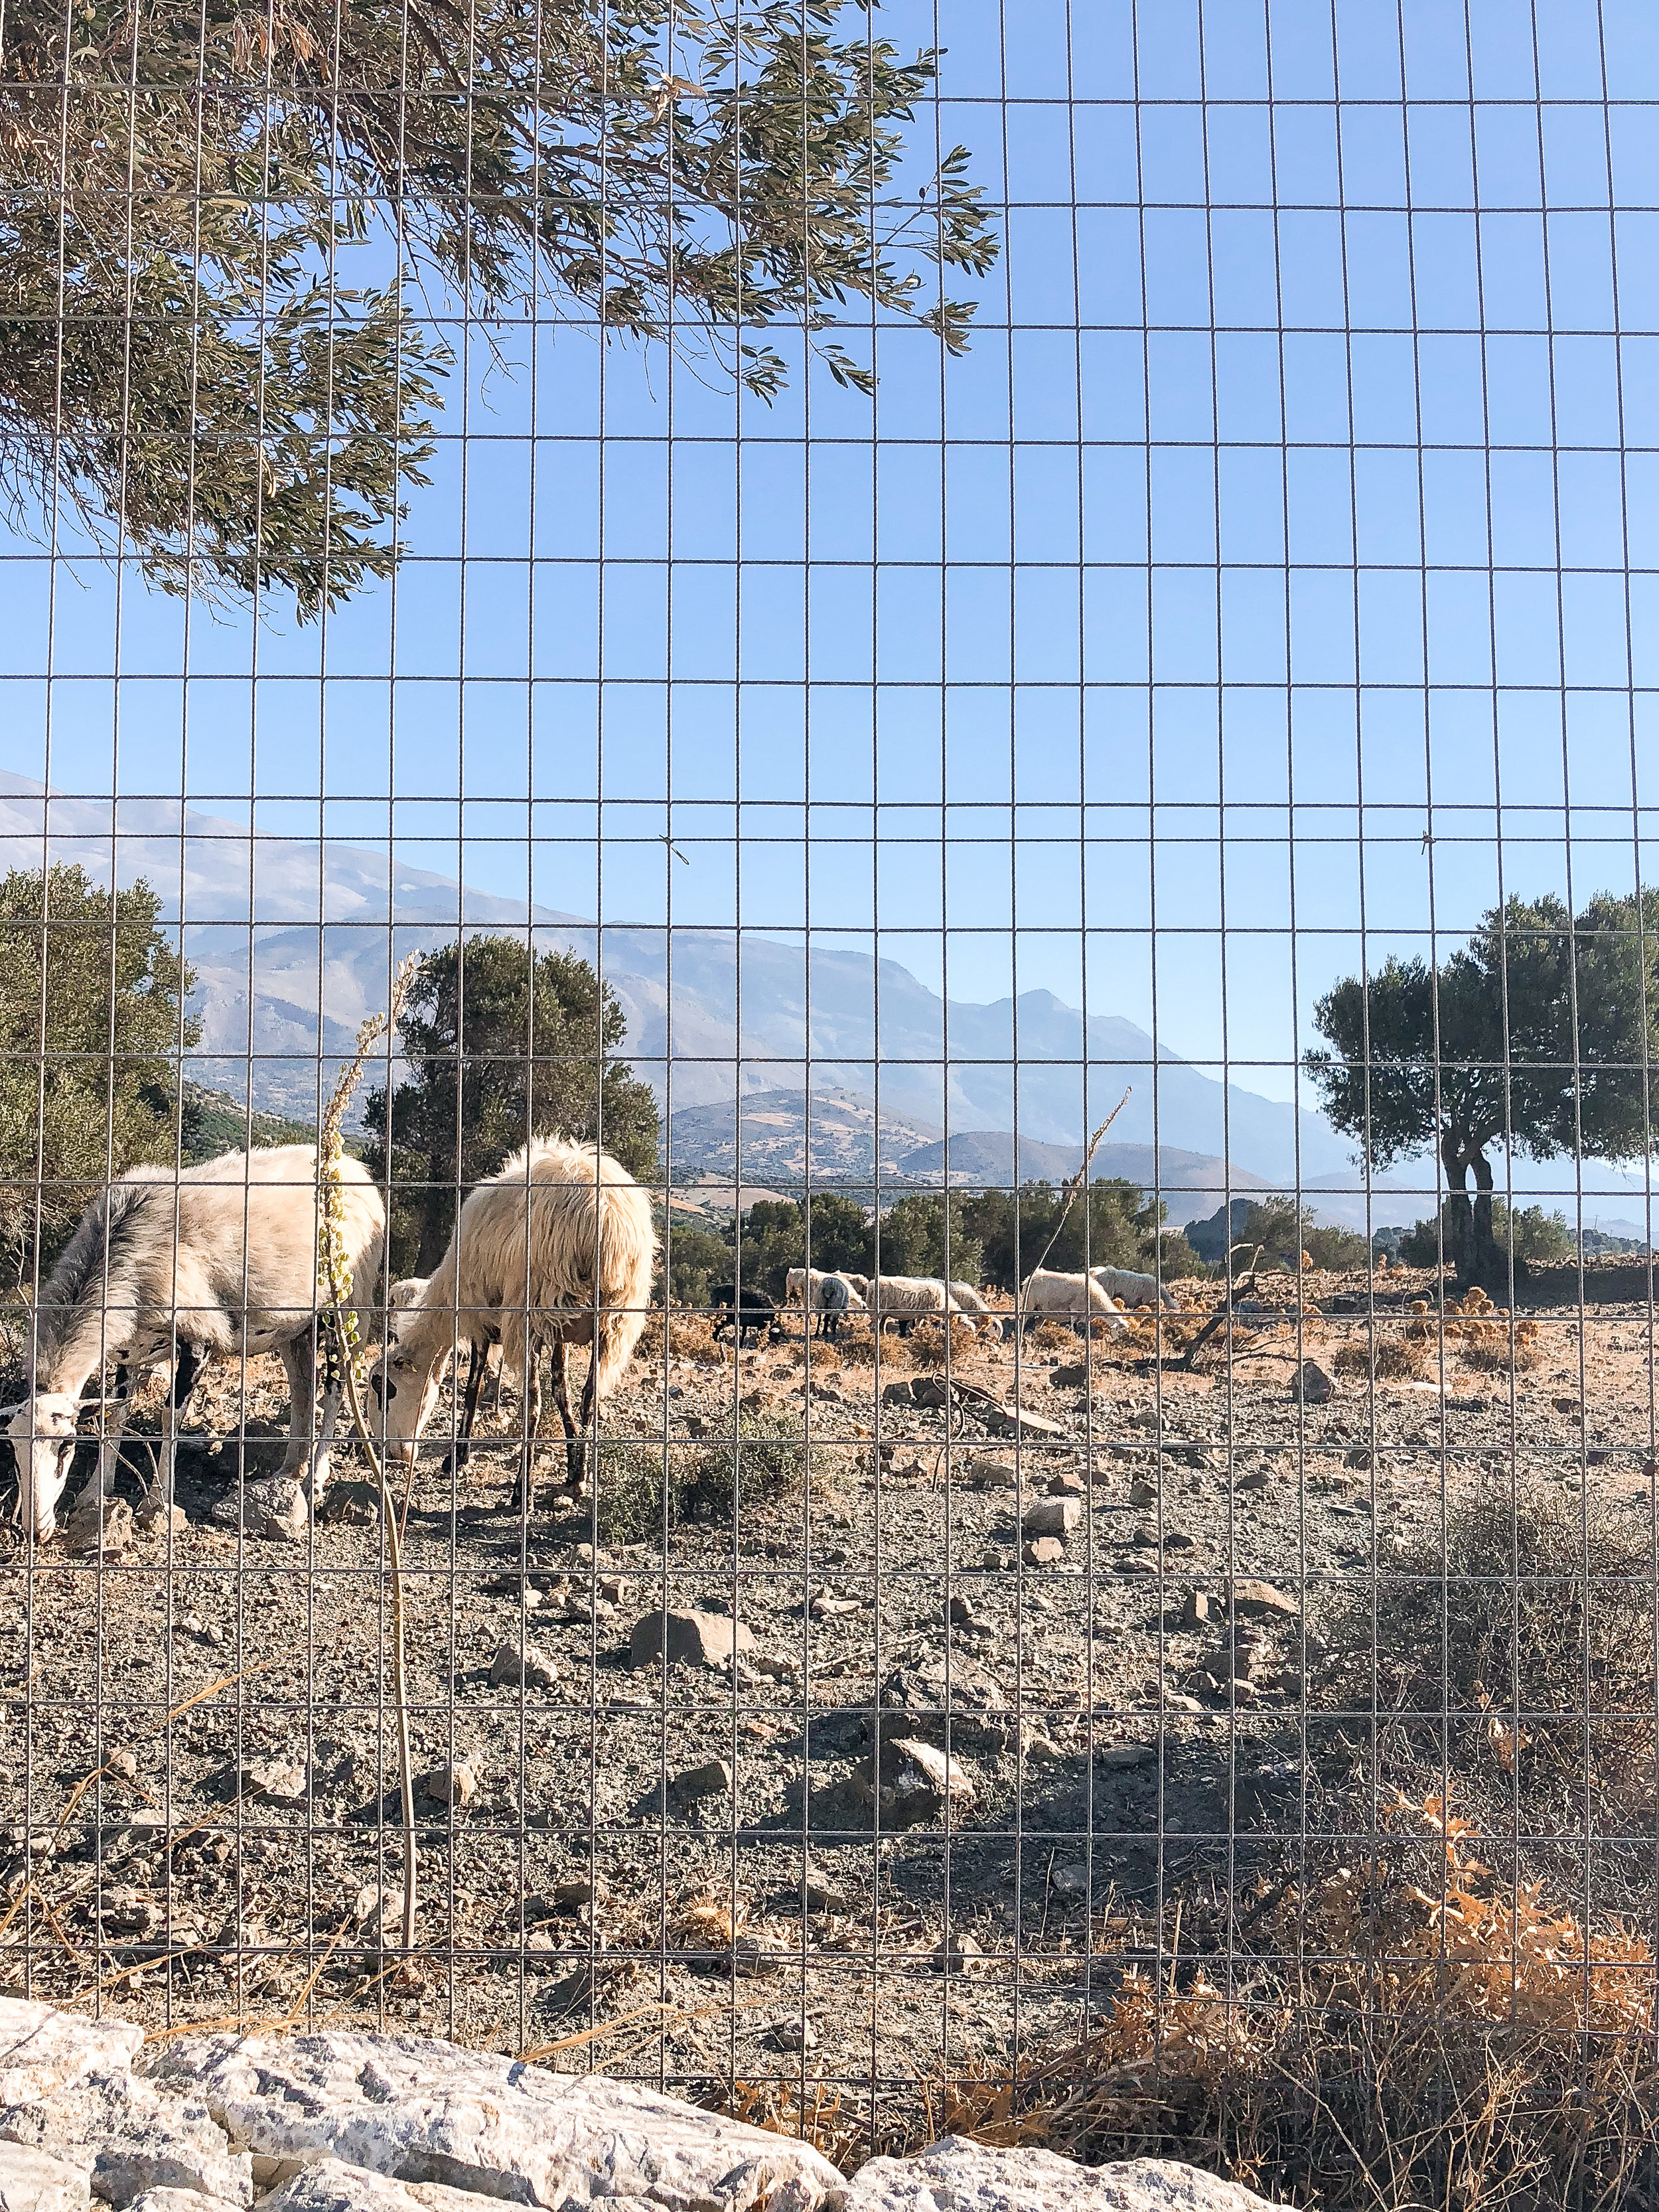 Goats that we heard before we saw, and not because of their bellowing! The light tinkling of their bells was barely audible, and we only heard it when we were walking to breakfast our first morning.